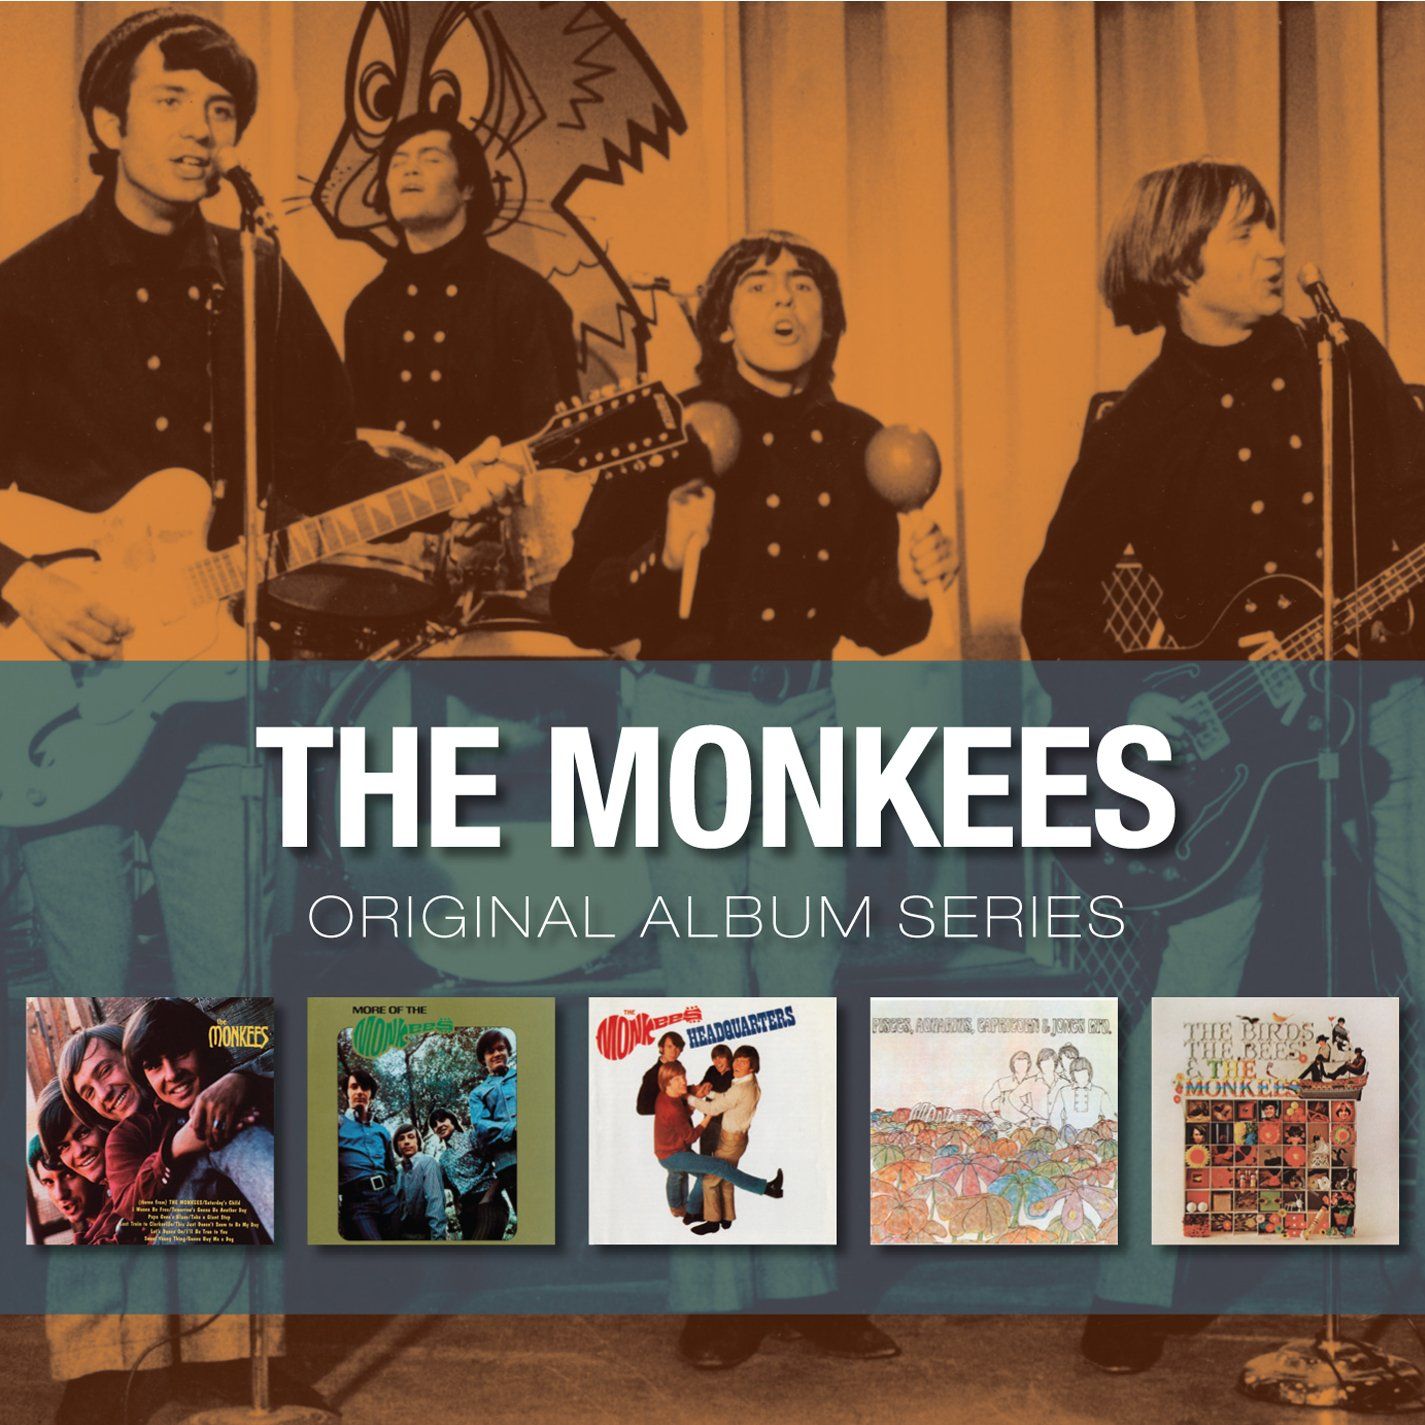 The Monkees - Original Album Series by Rhino